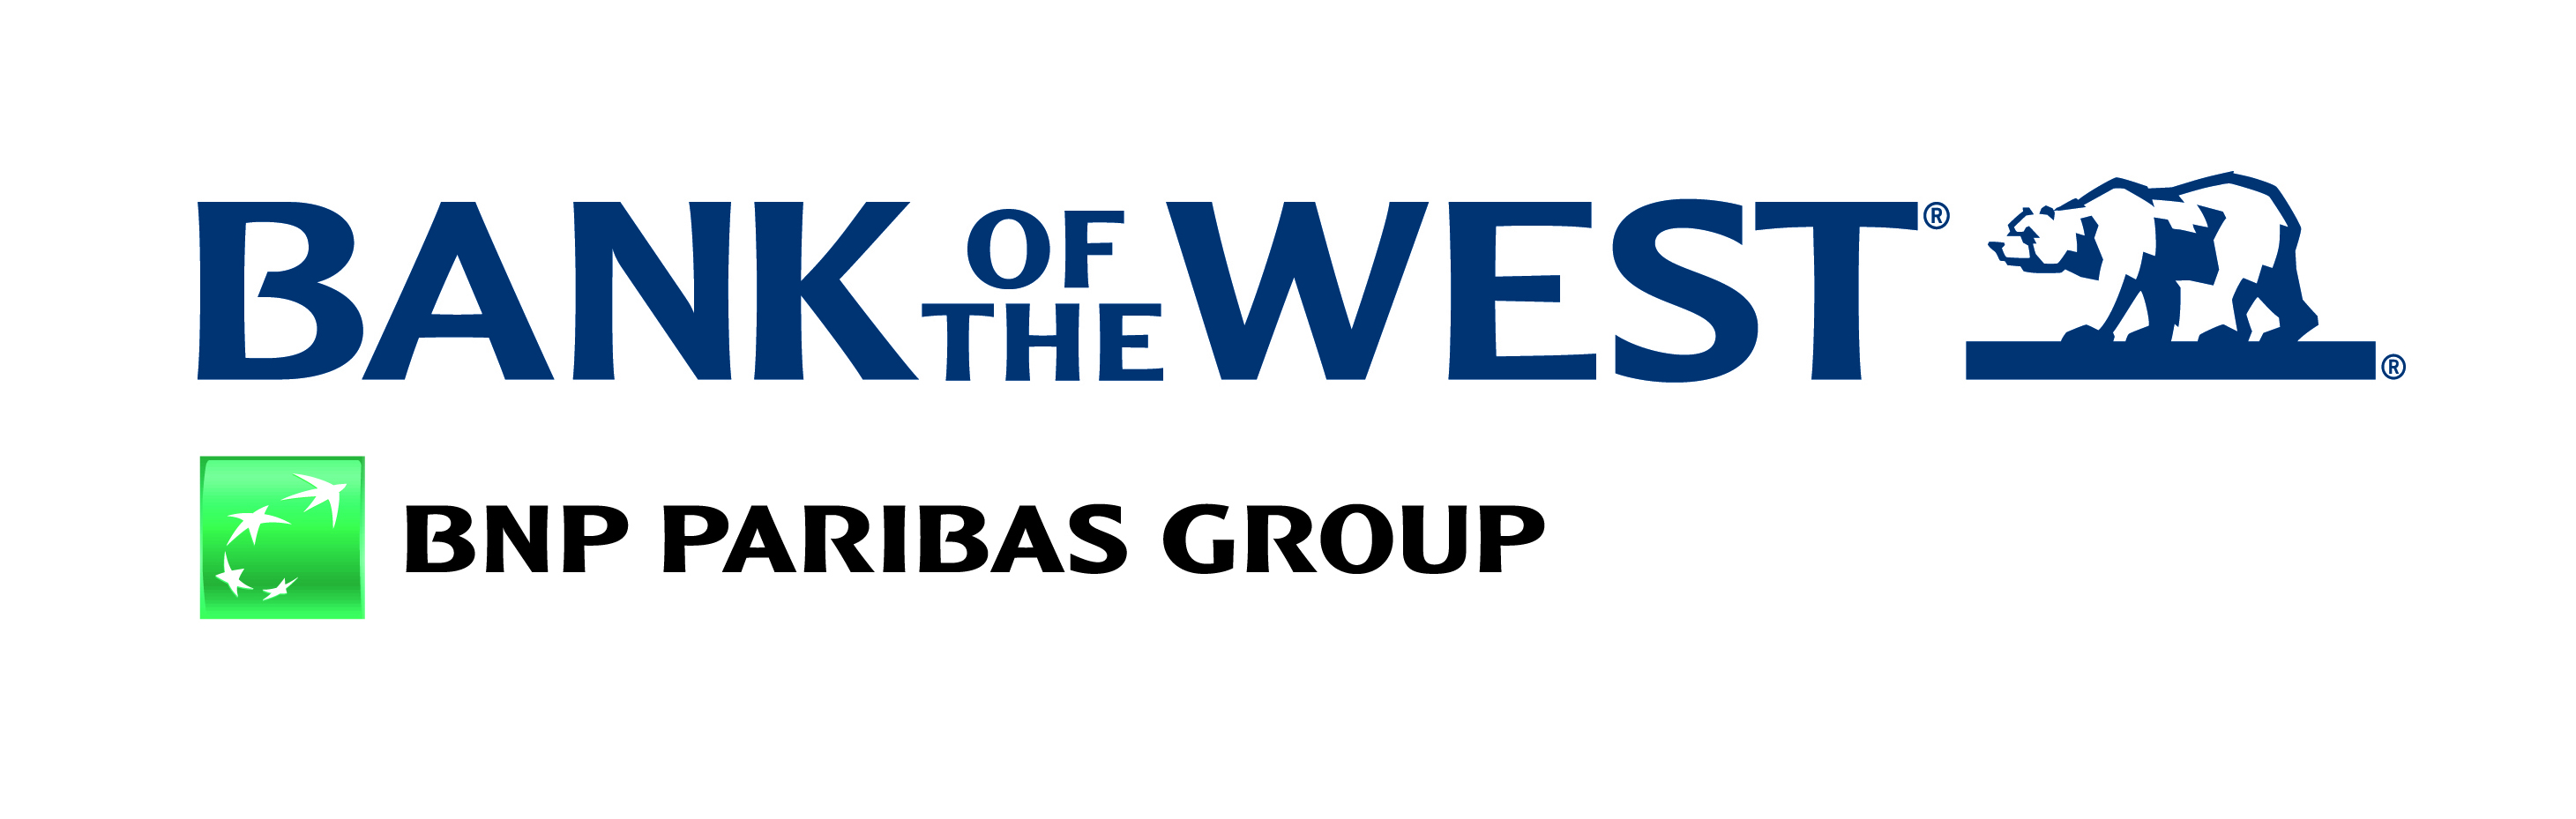 Bank of the west Logos.